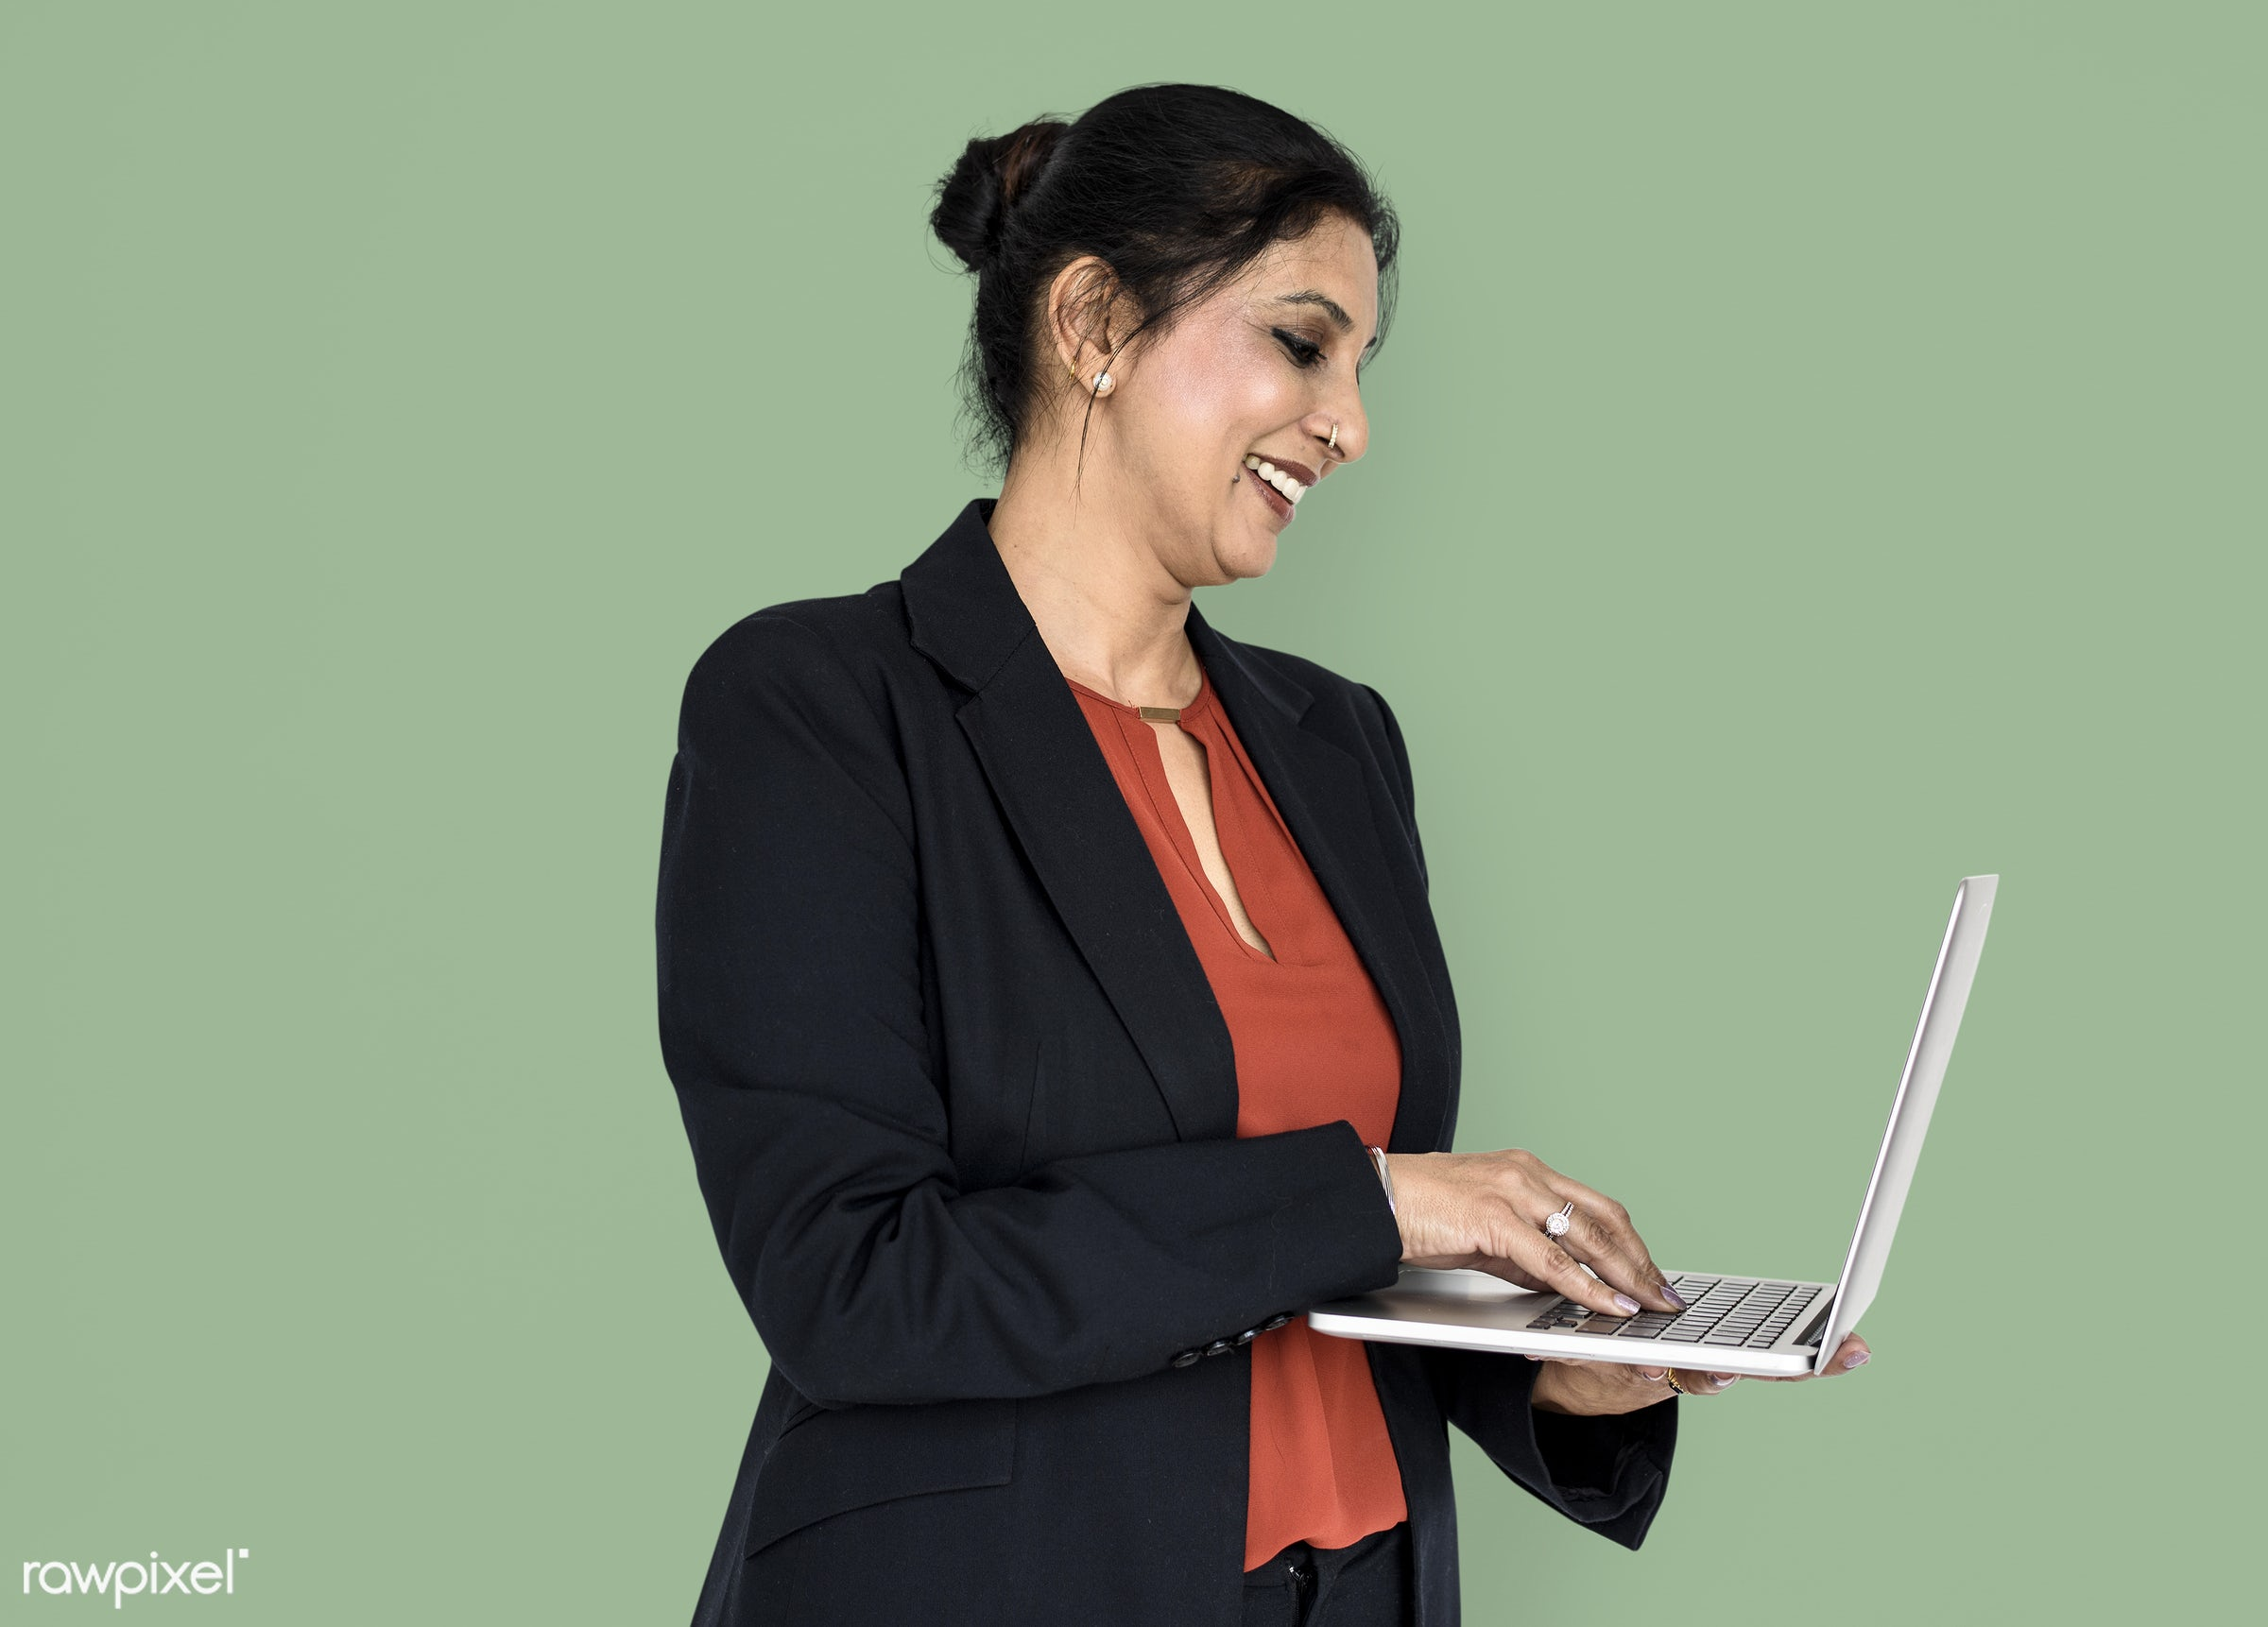 expression, studio, person, technology, business wear, people, business, asian, girl, woman, happy, laptop, working, smile,...